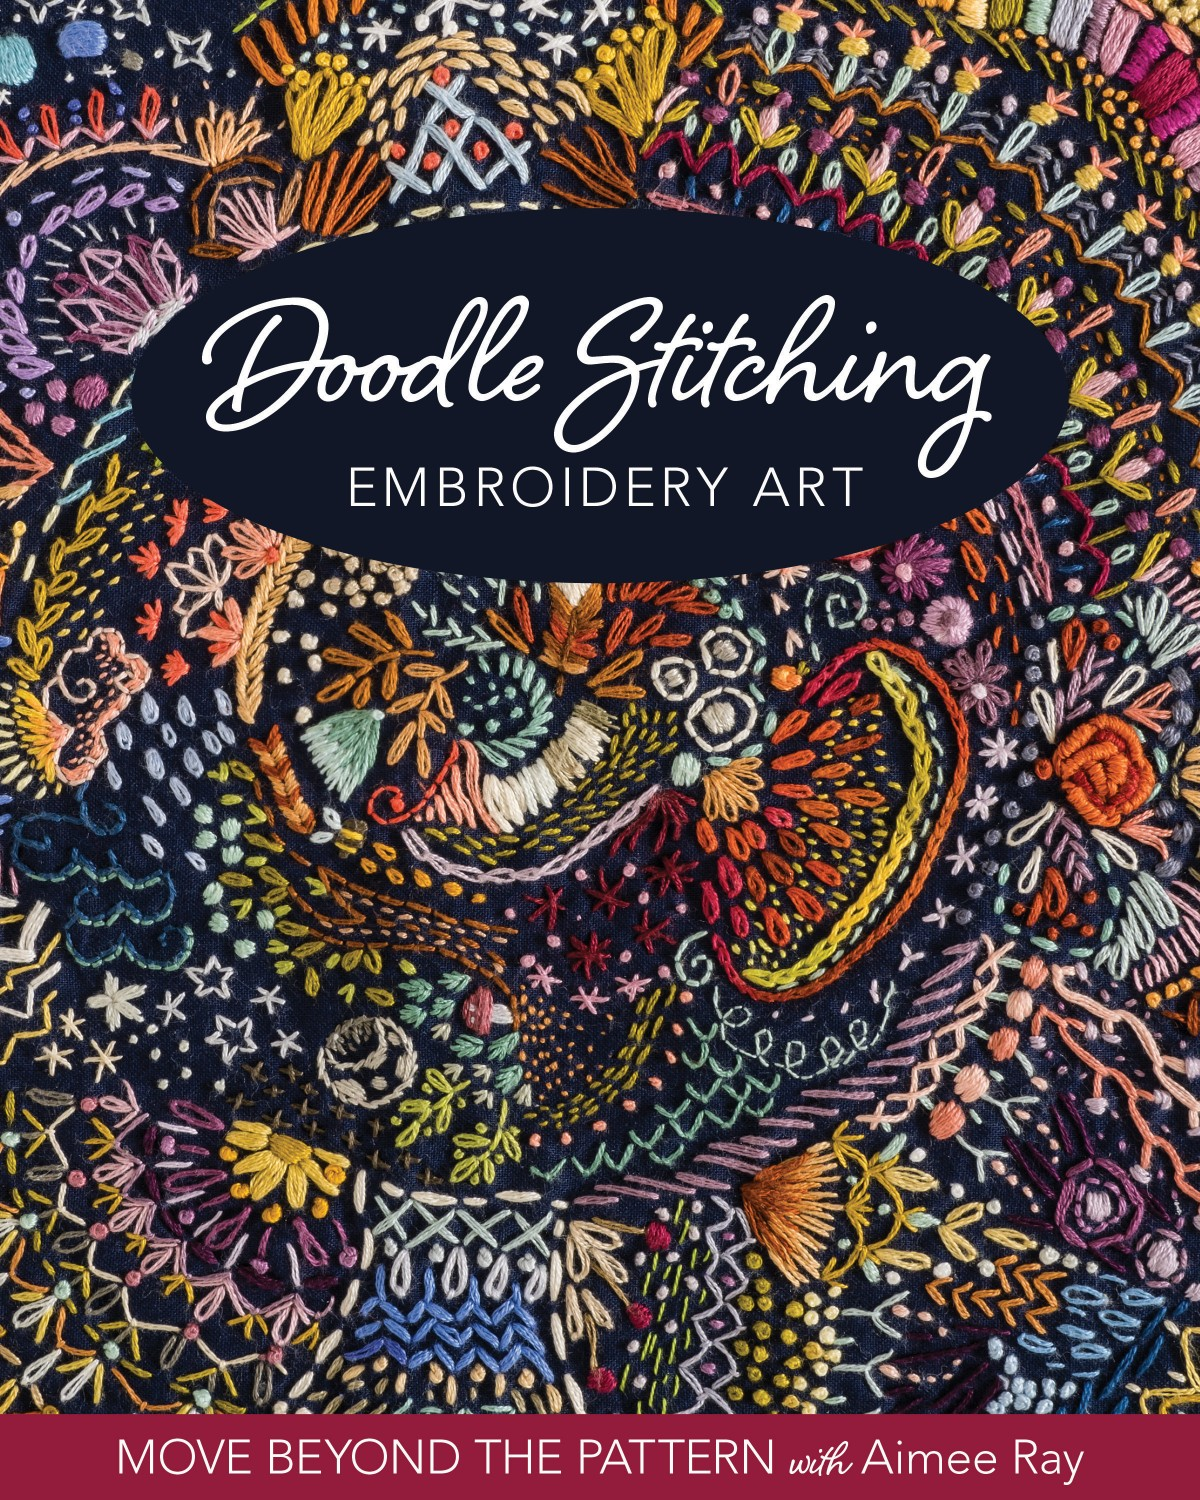 Doodle Stitching Embroidery Art ~RELEASE DATE August 25, 2020~